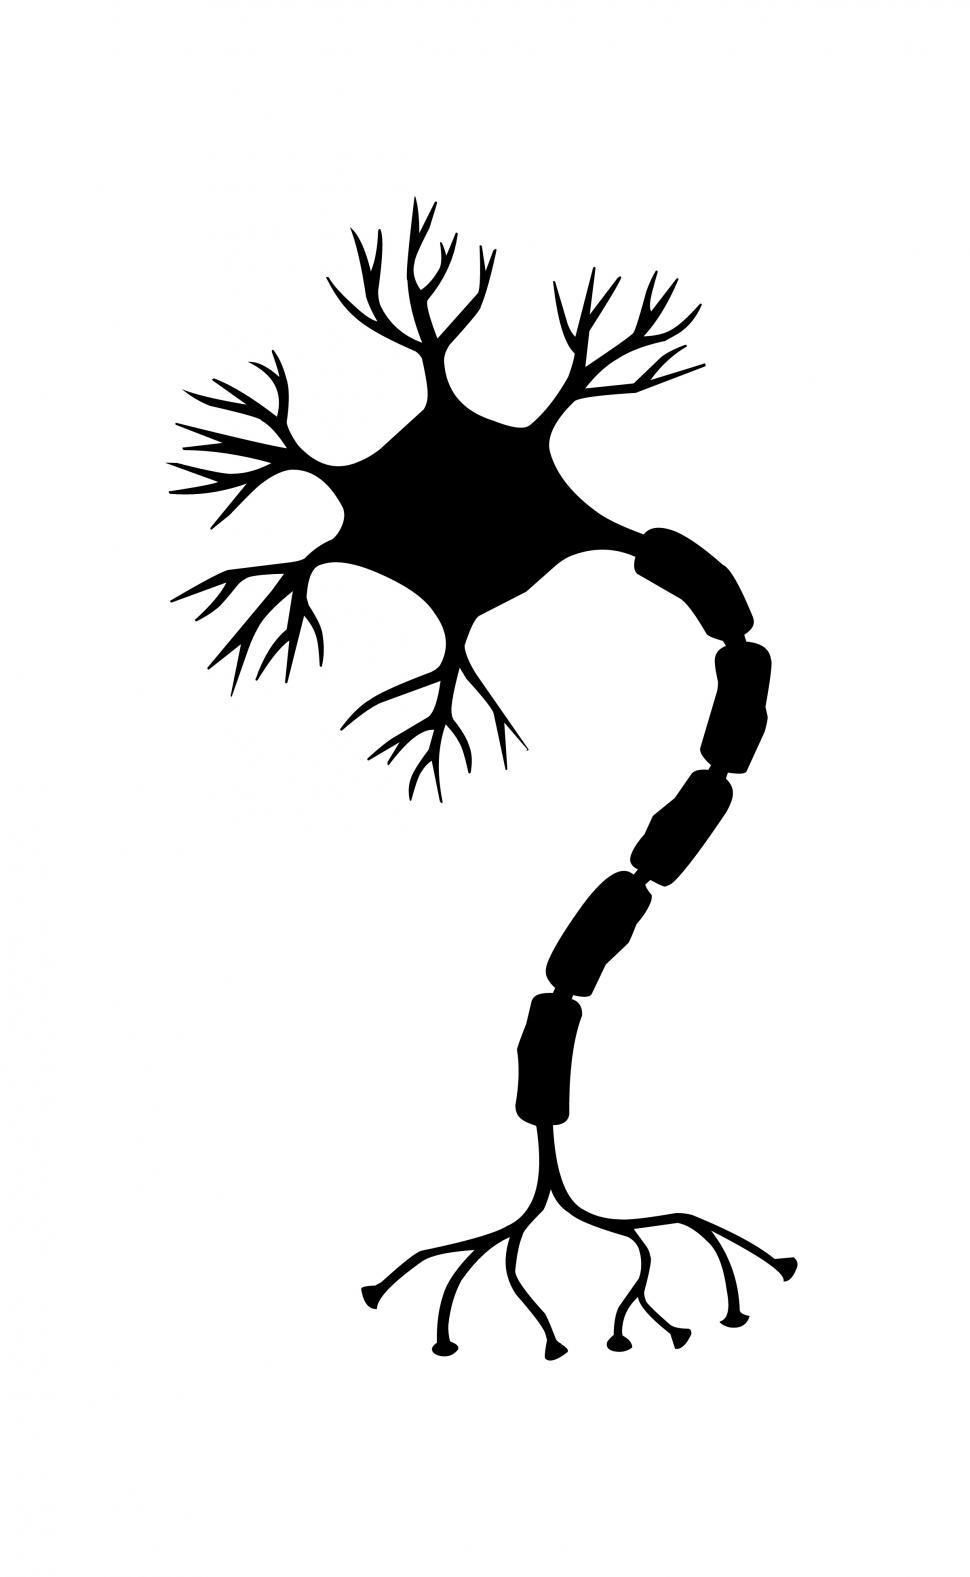 Download Free Stock HD Photo of nerve cell Silhouette  Online